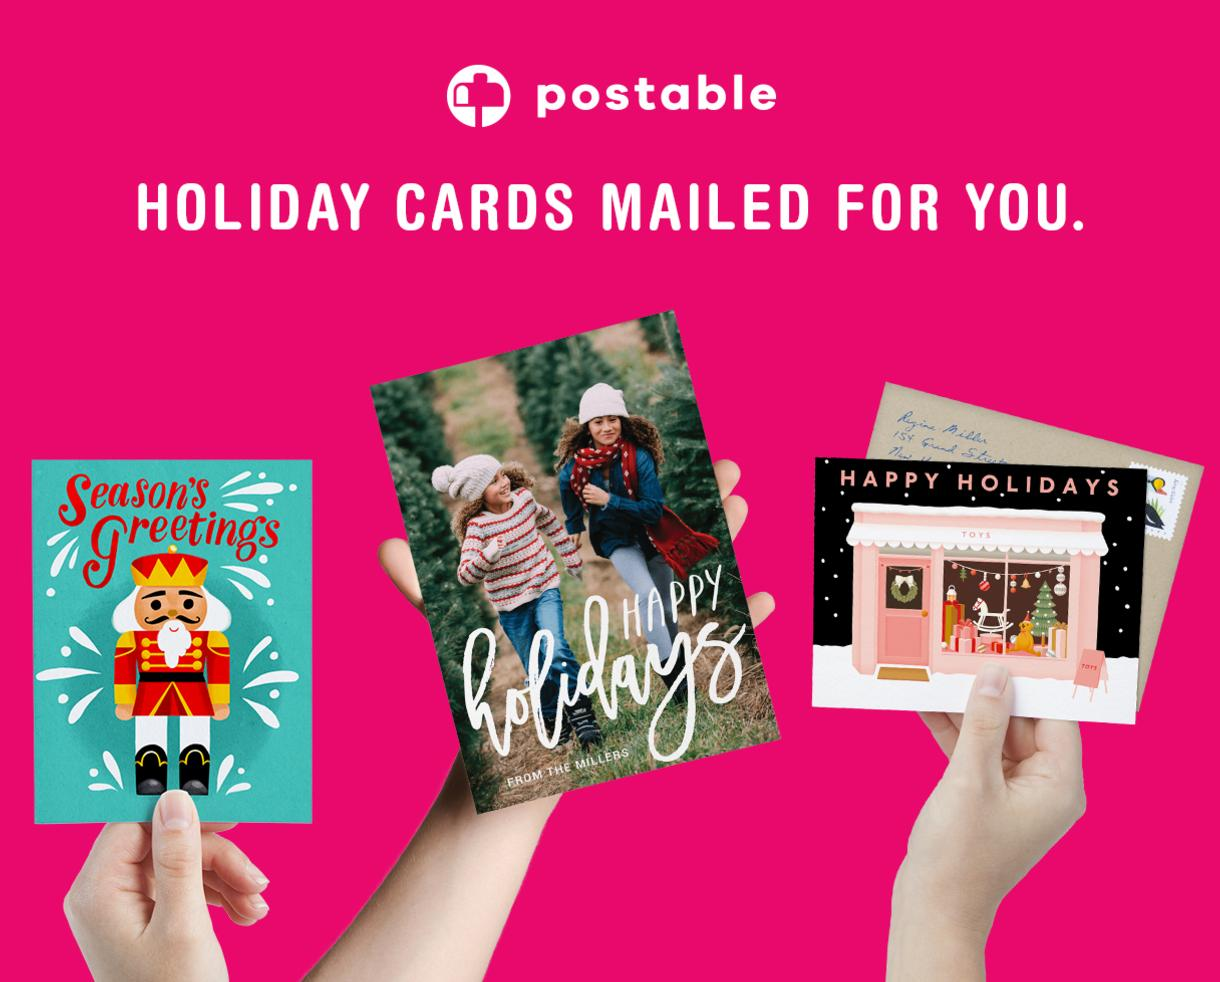 Save 20% Off Entire Order of Custom Holiday Cards from Postable - Printed, Addressed & Mailed for You!